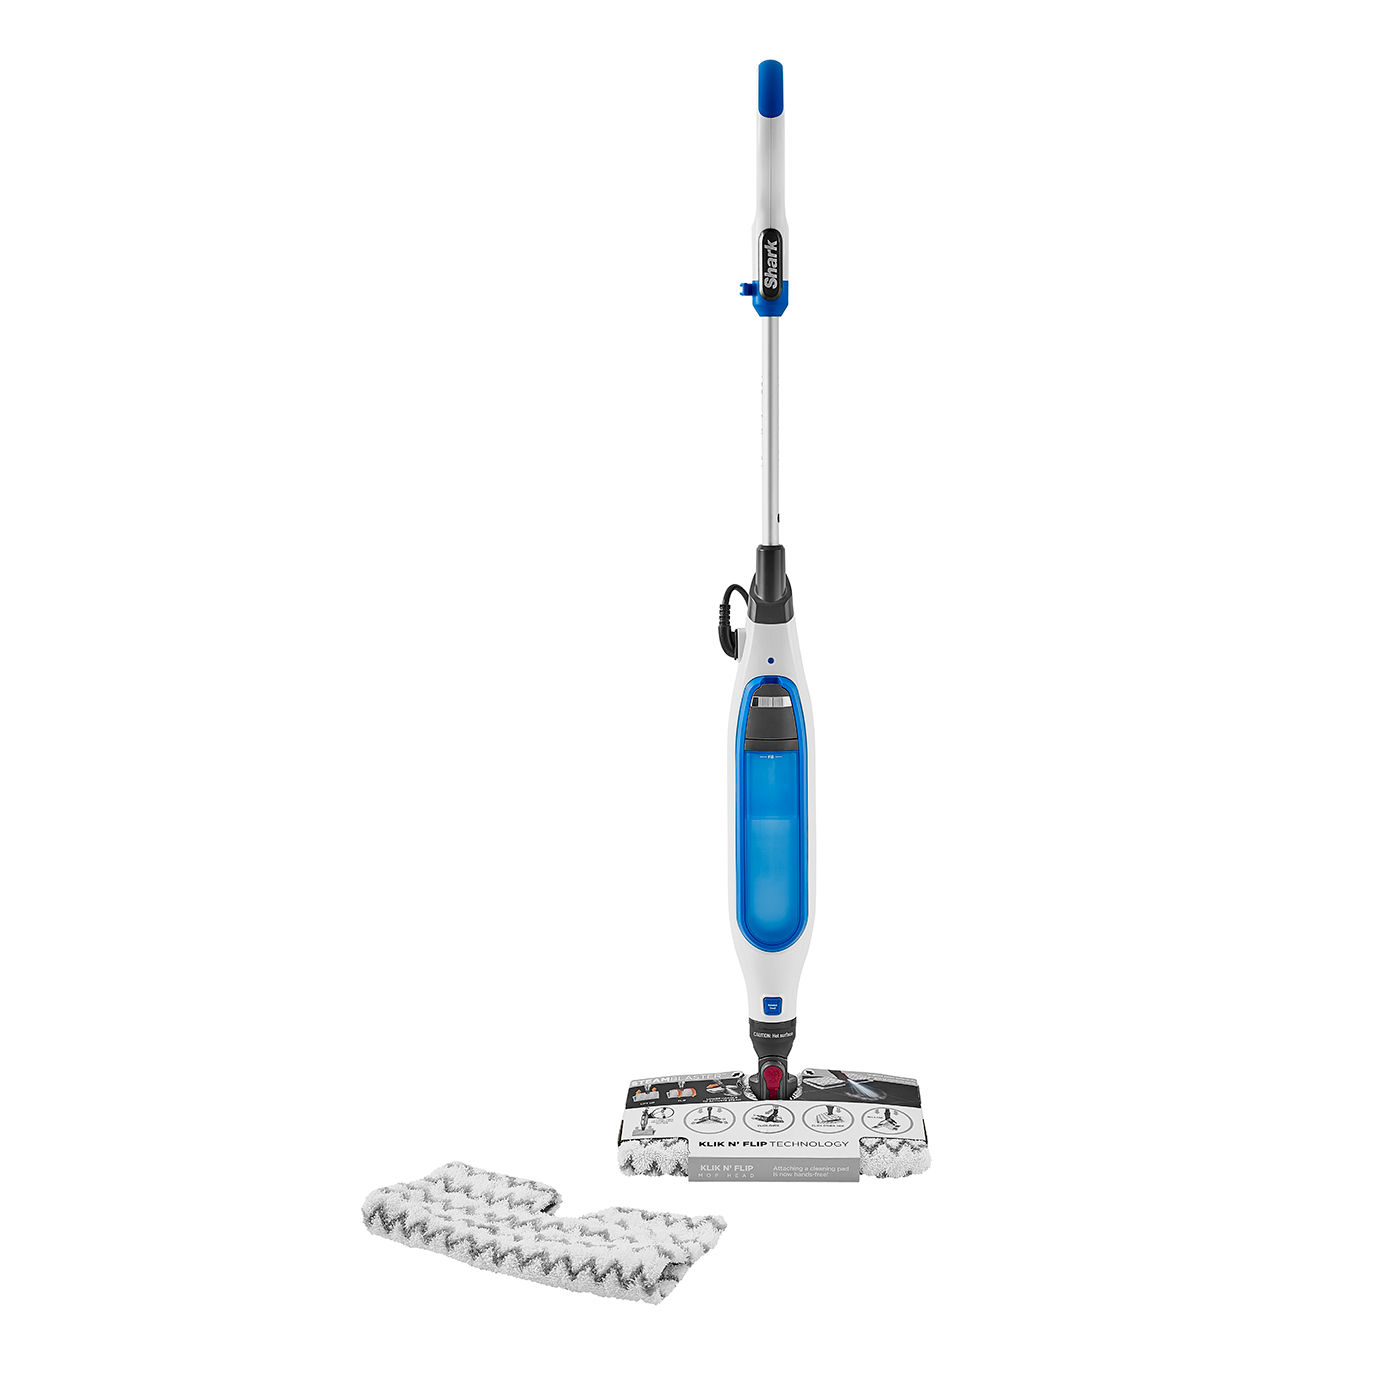 shark klik nu0027 flip manual steam pocket mop s6001uk